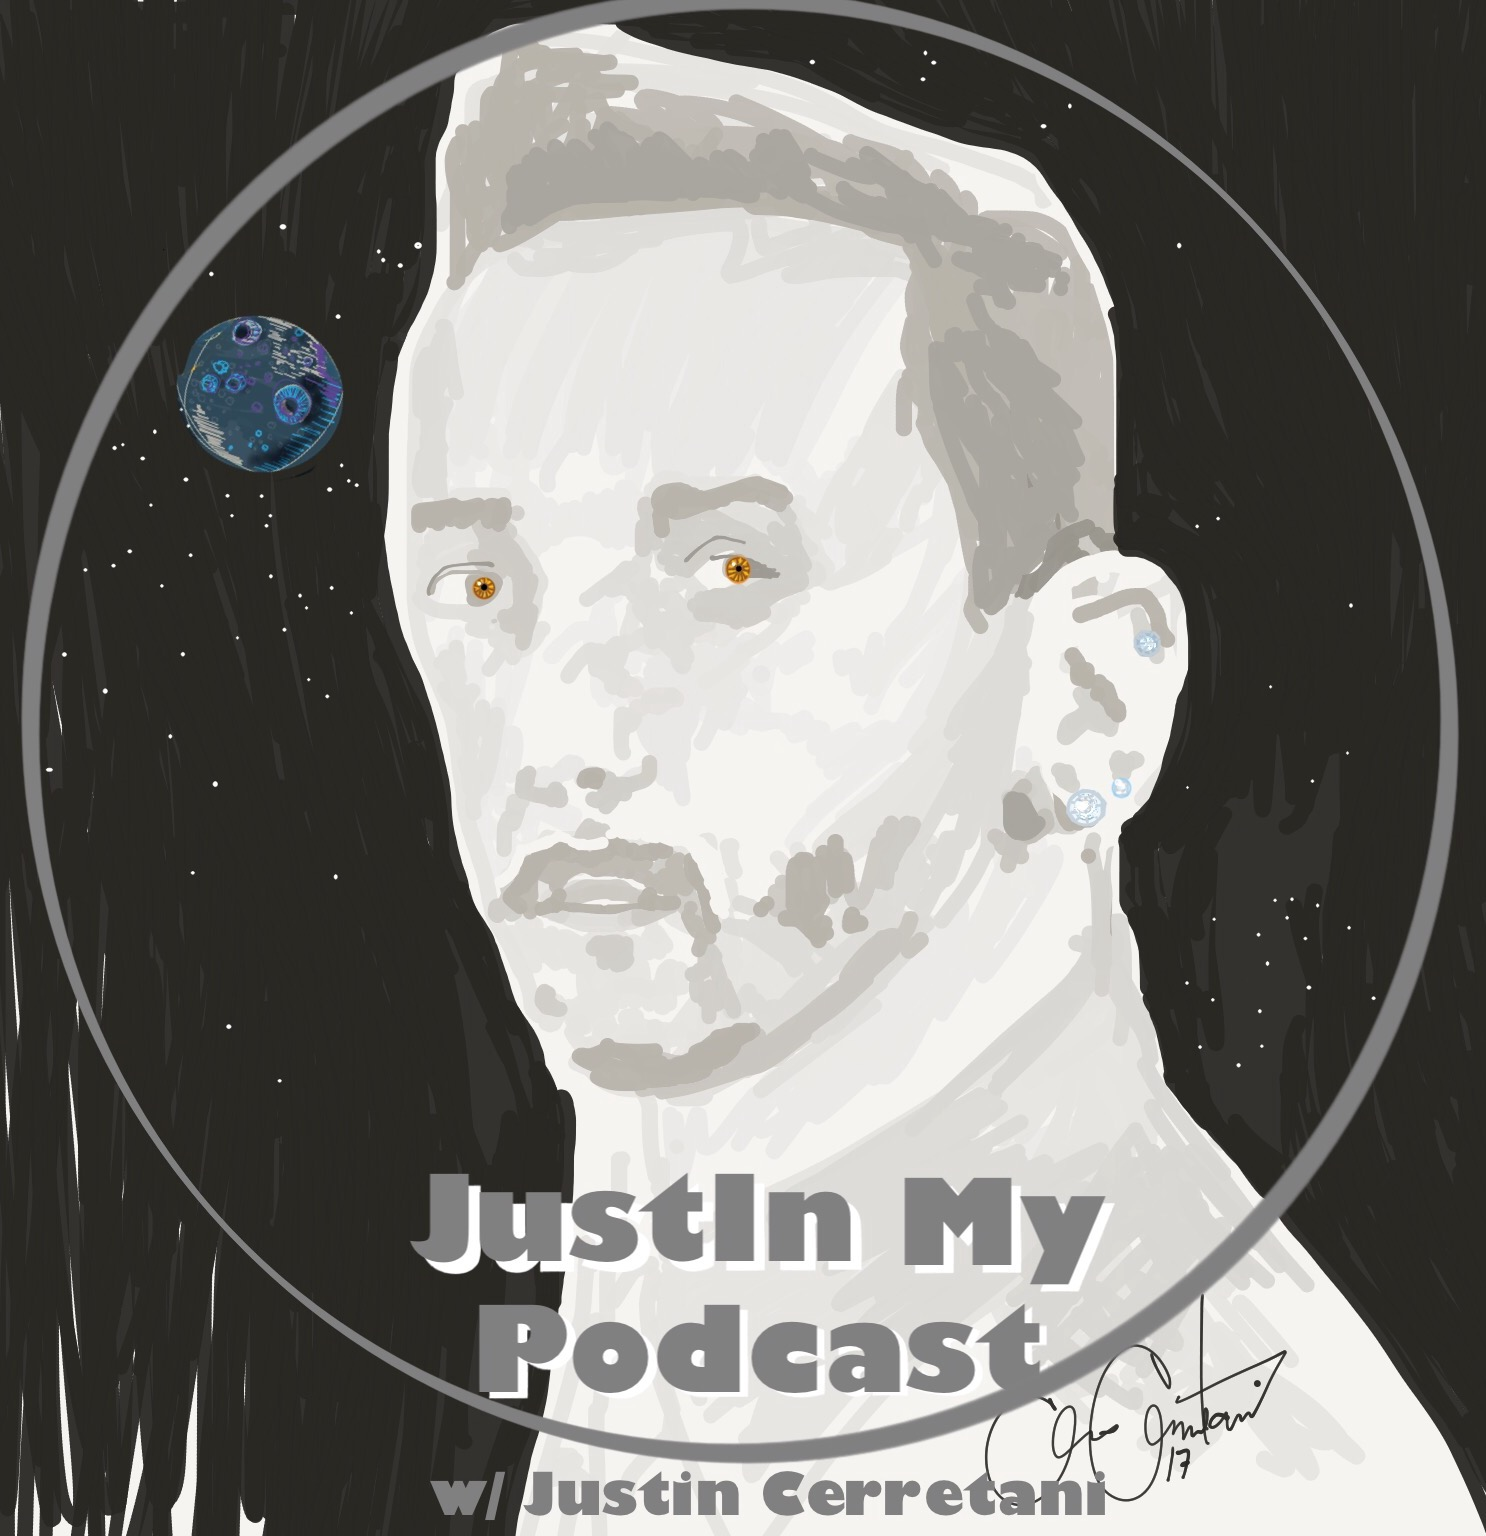 JustIn My Podcast